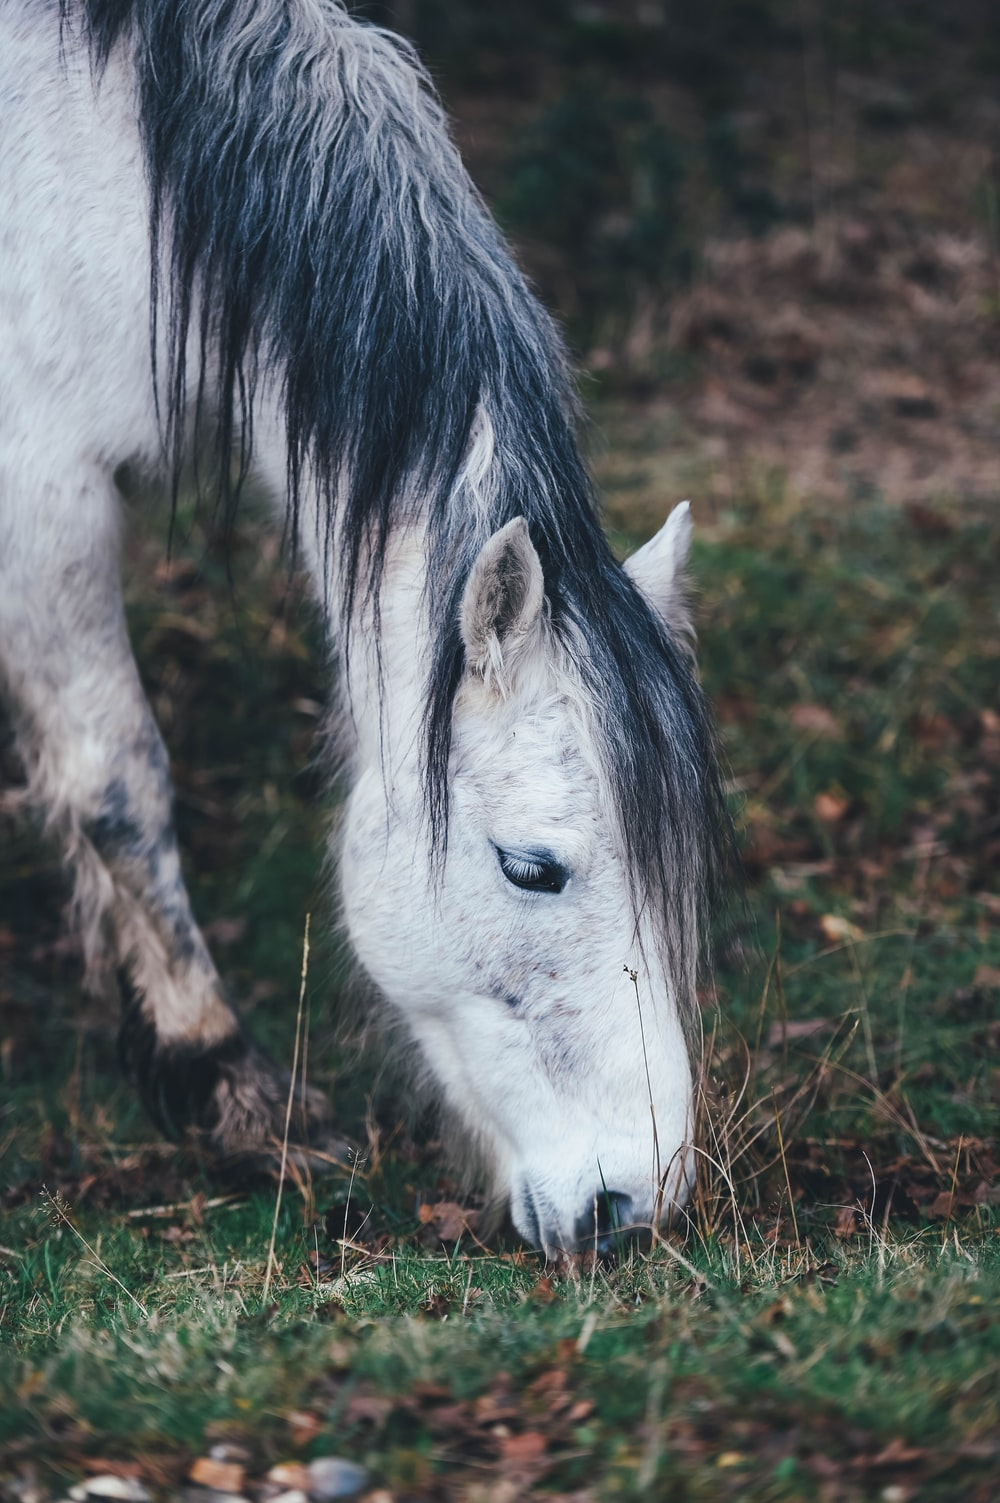 white horse grazing on grass in selective focus photography